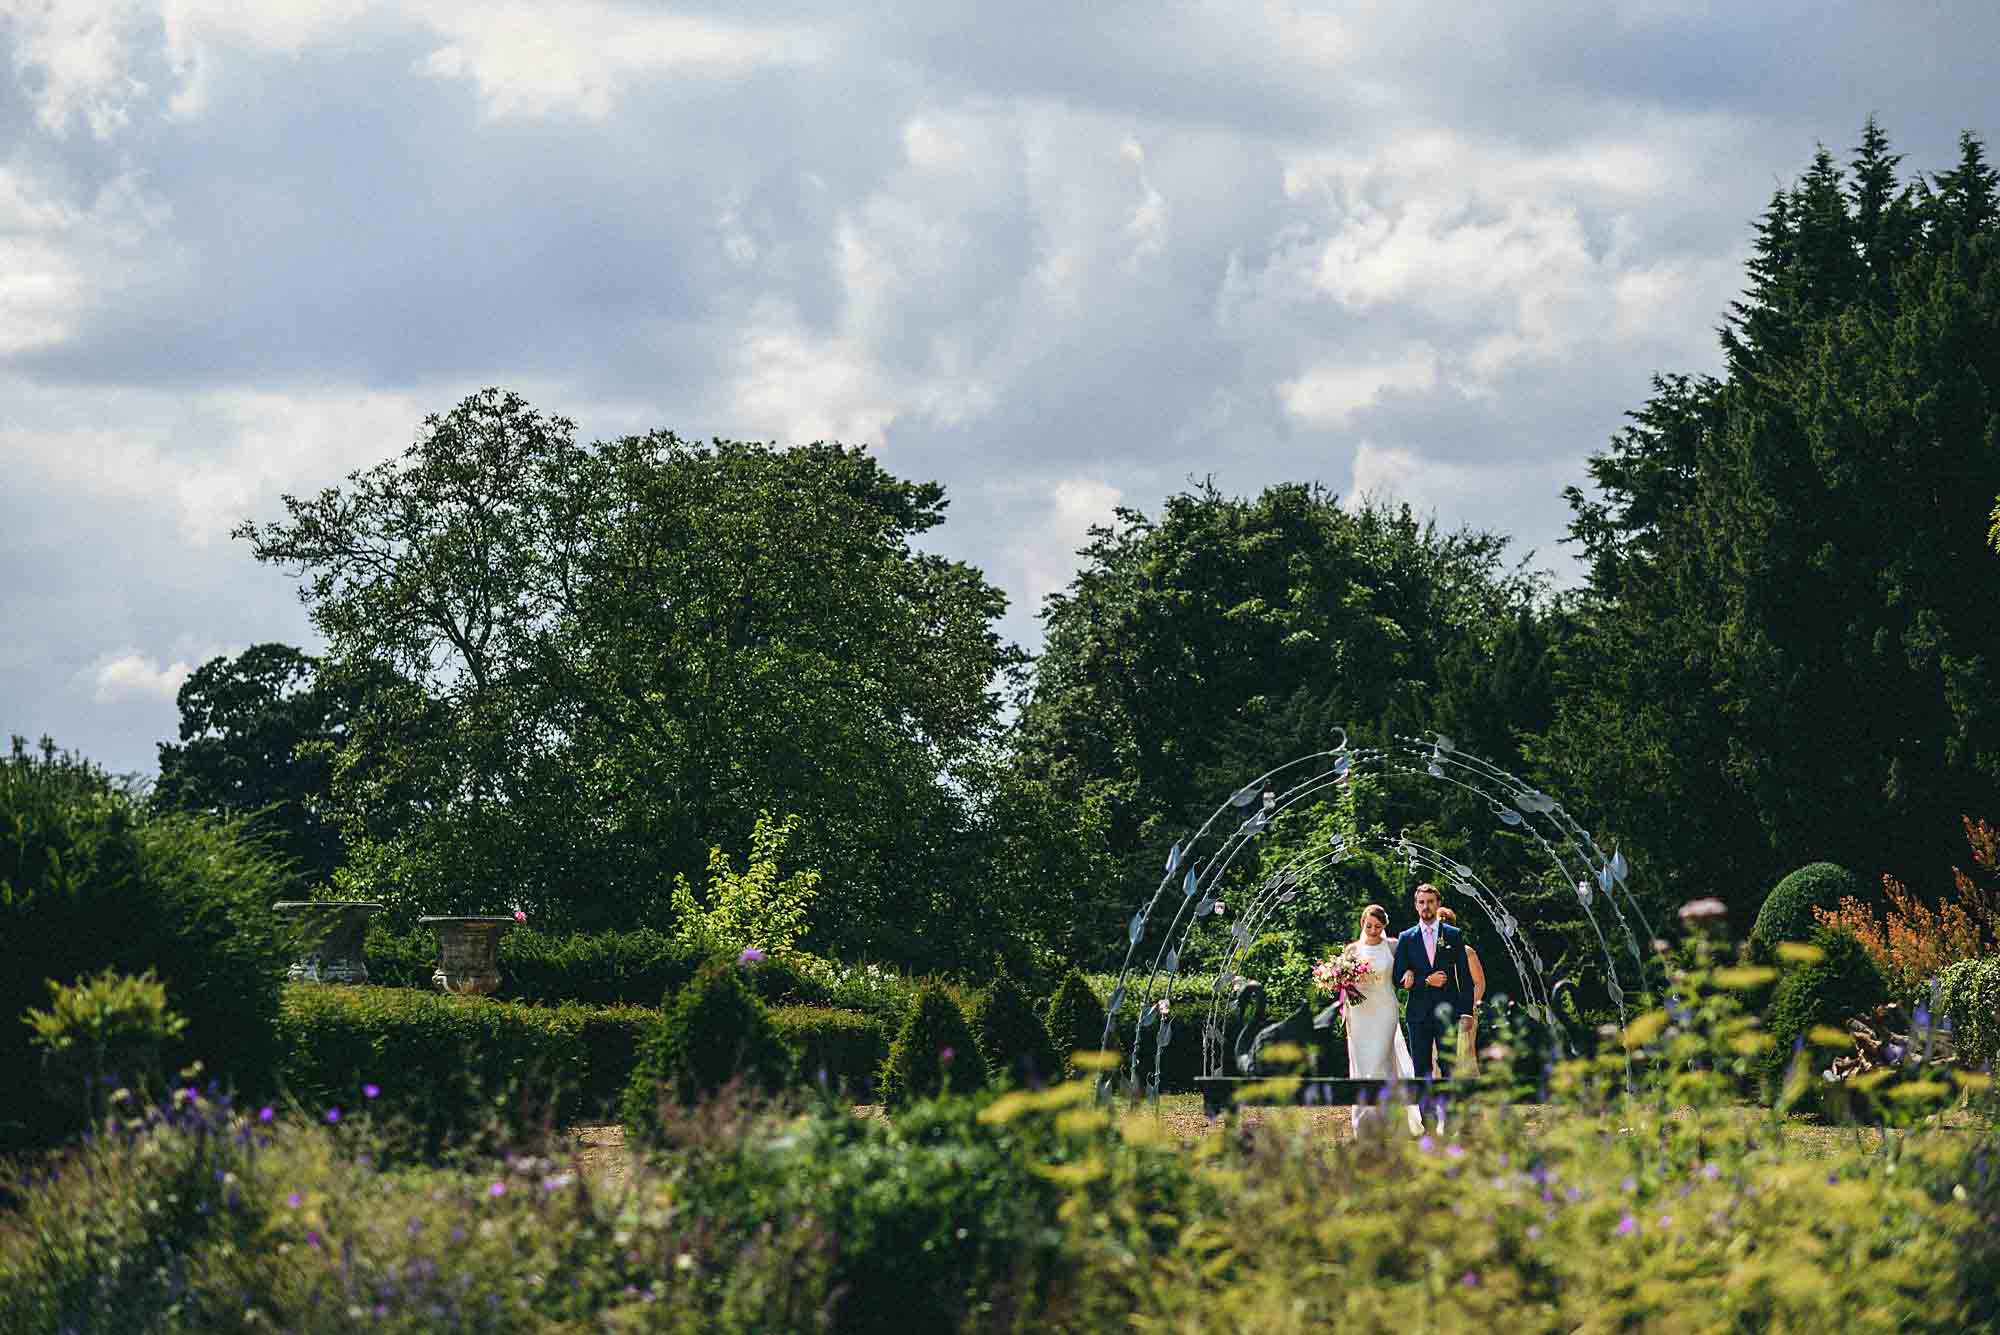 Narborough Hall Gardens wedding photography 19 Completed